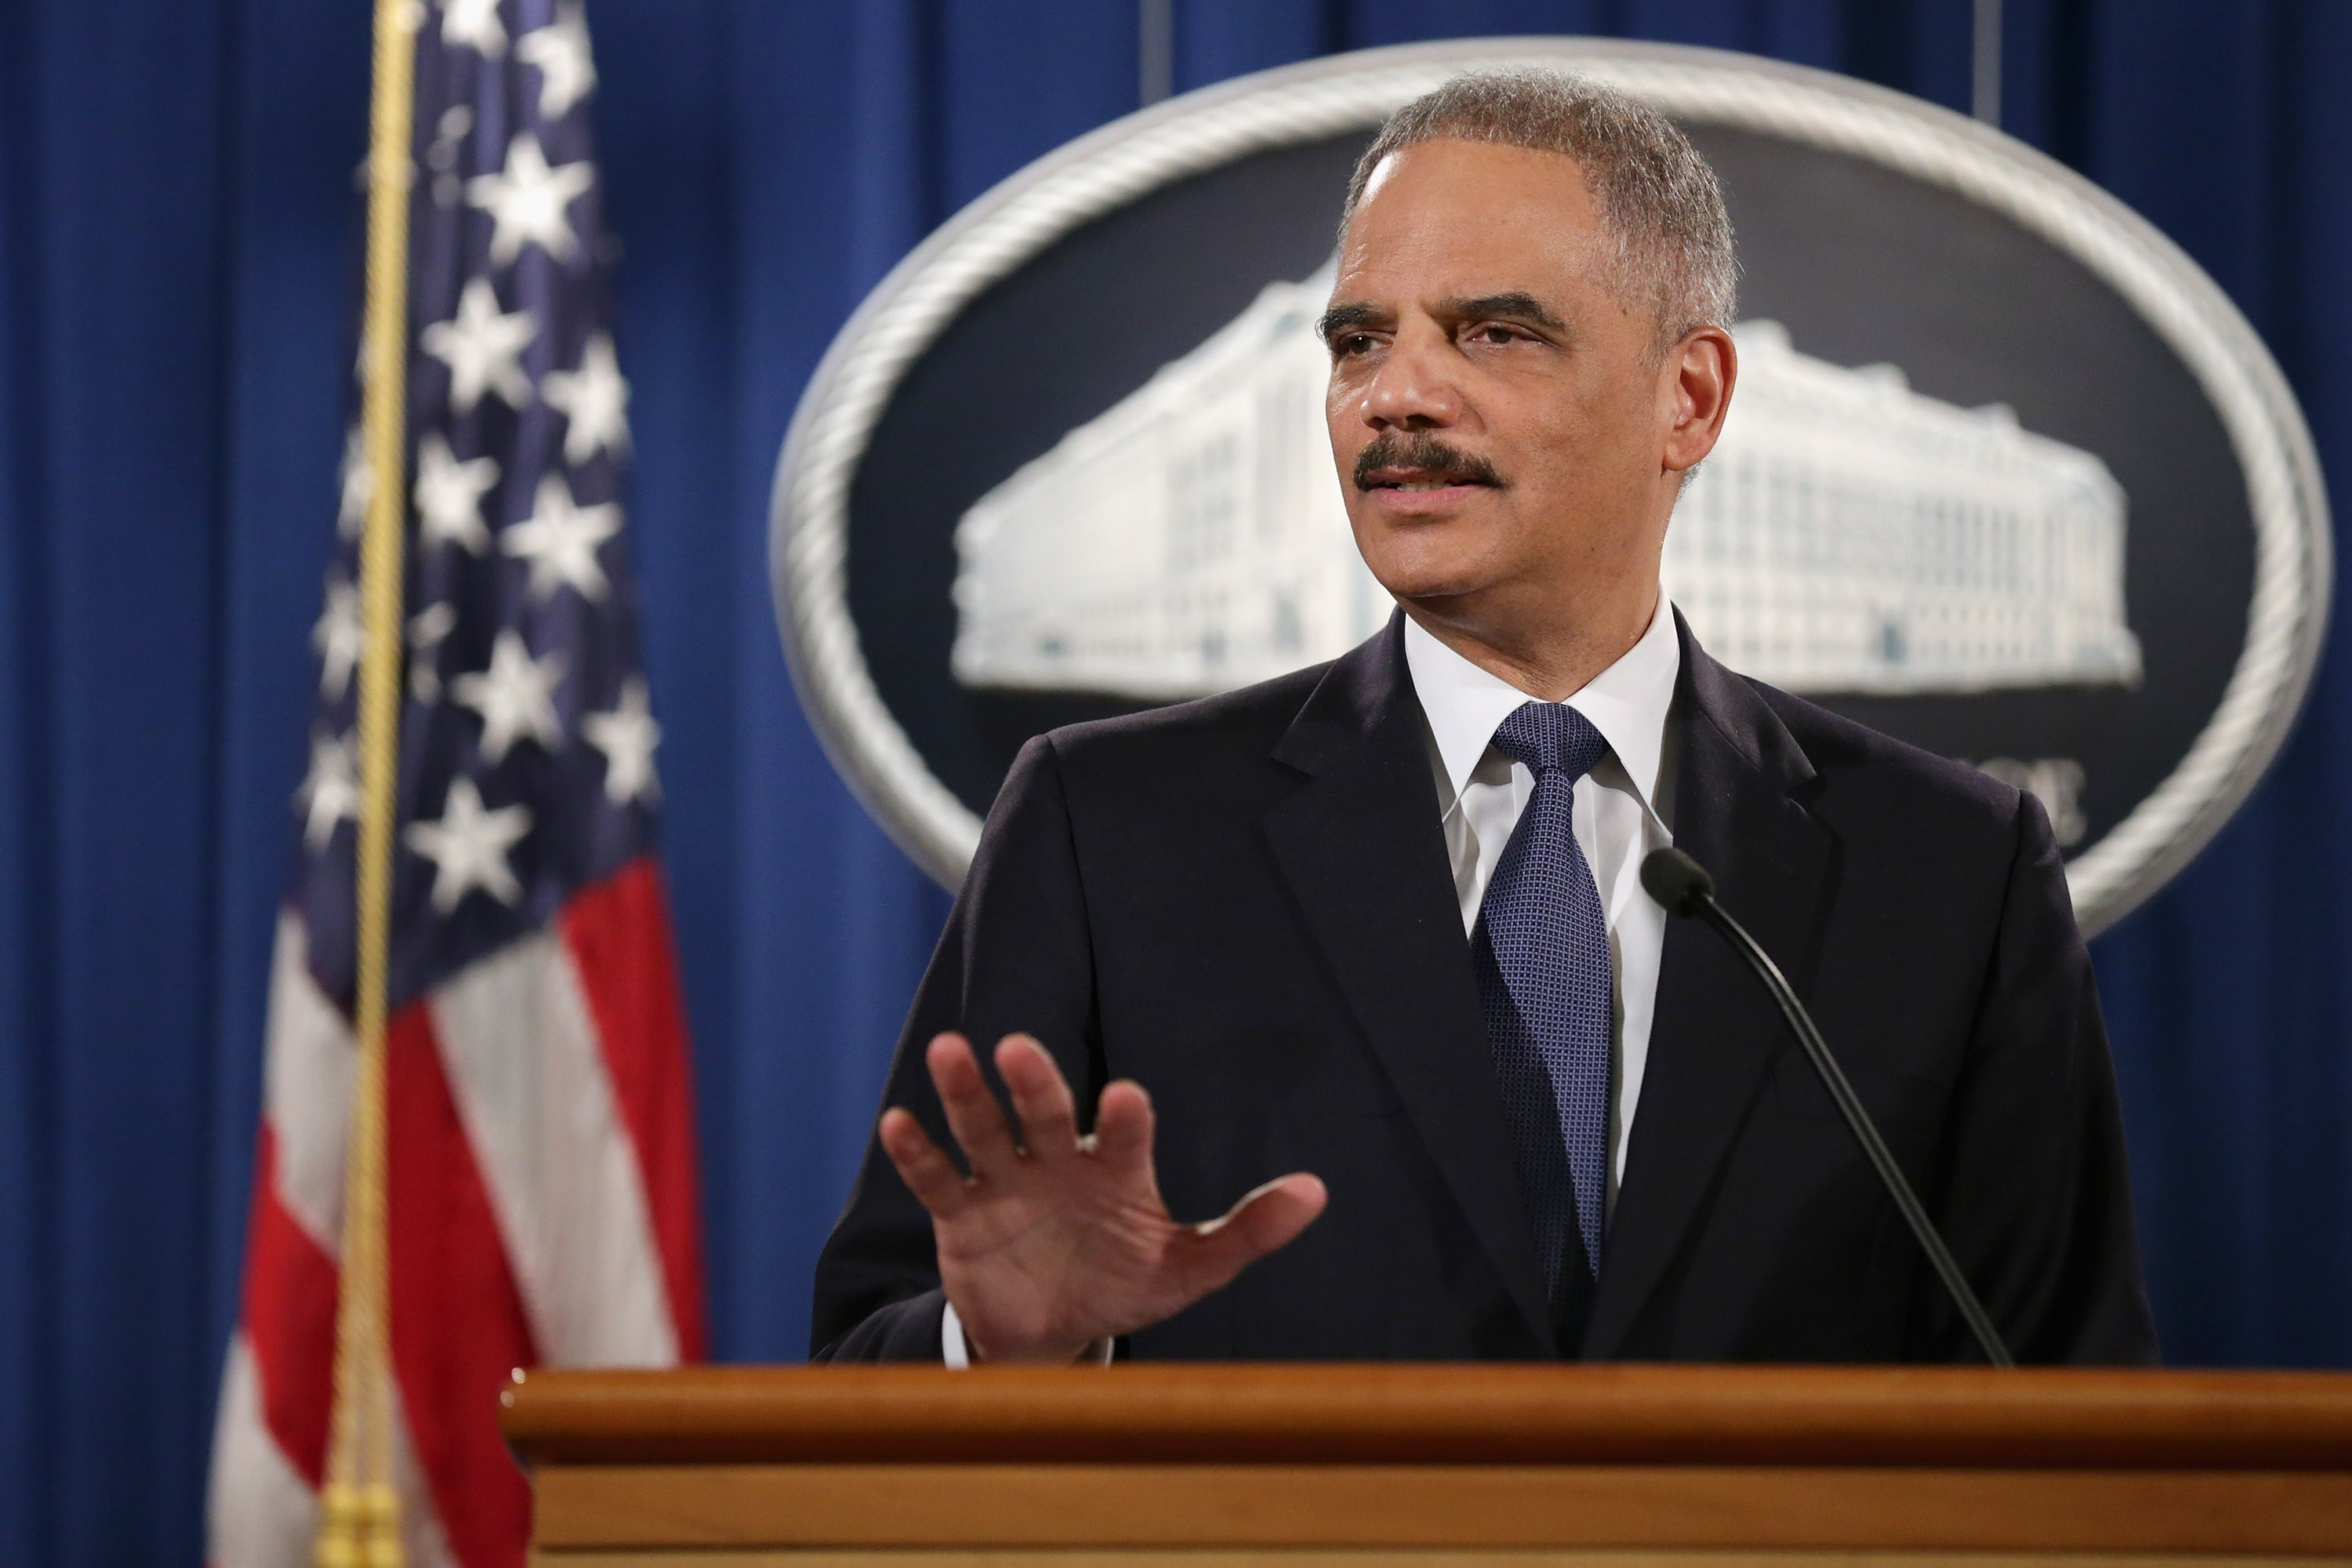 Attorney General Eric Holder delivers remarks about the Justice Department's findings related to two investigations in Ferguson, Missouri, at the Robert F. Kennedy Department of Justice Building March 4, 2015 in Washington, DC.  (Getty Images)